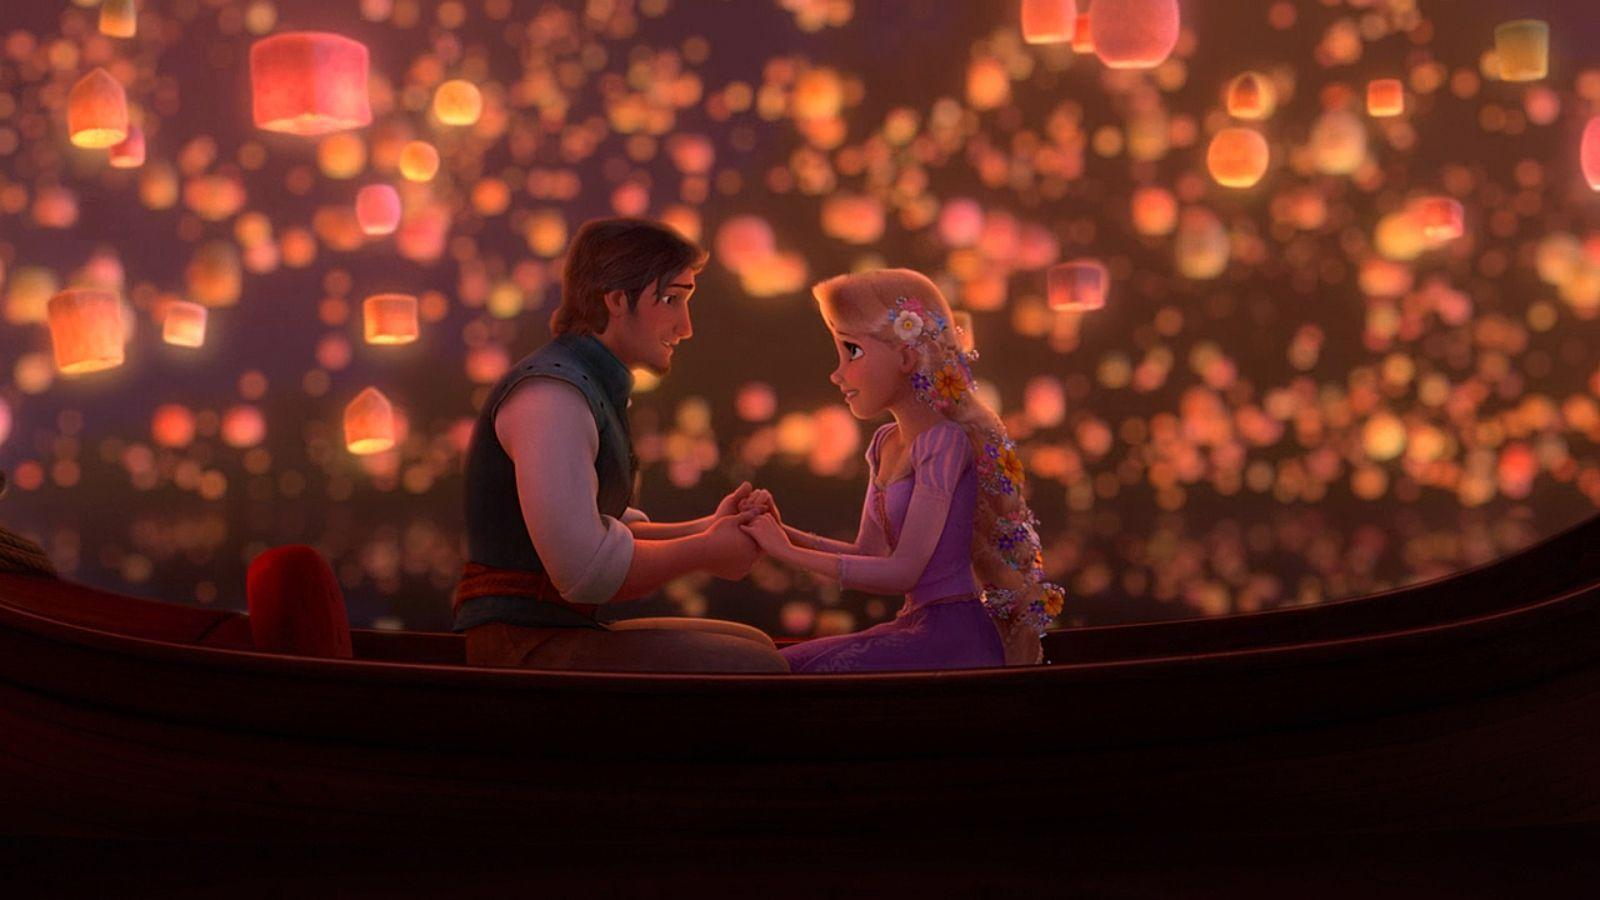 Tangled Wallpapers Wallpaper Cave HD Wallpapers Download Free Images Wallpaper [1000image.com]